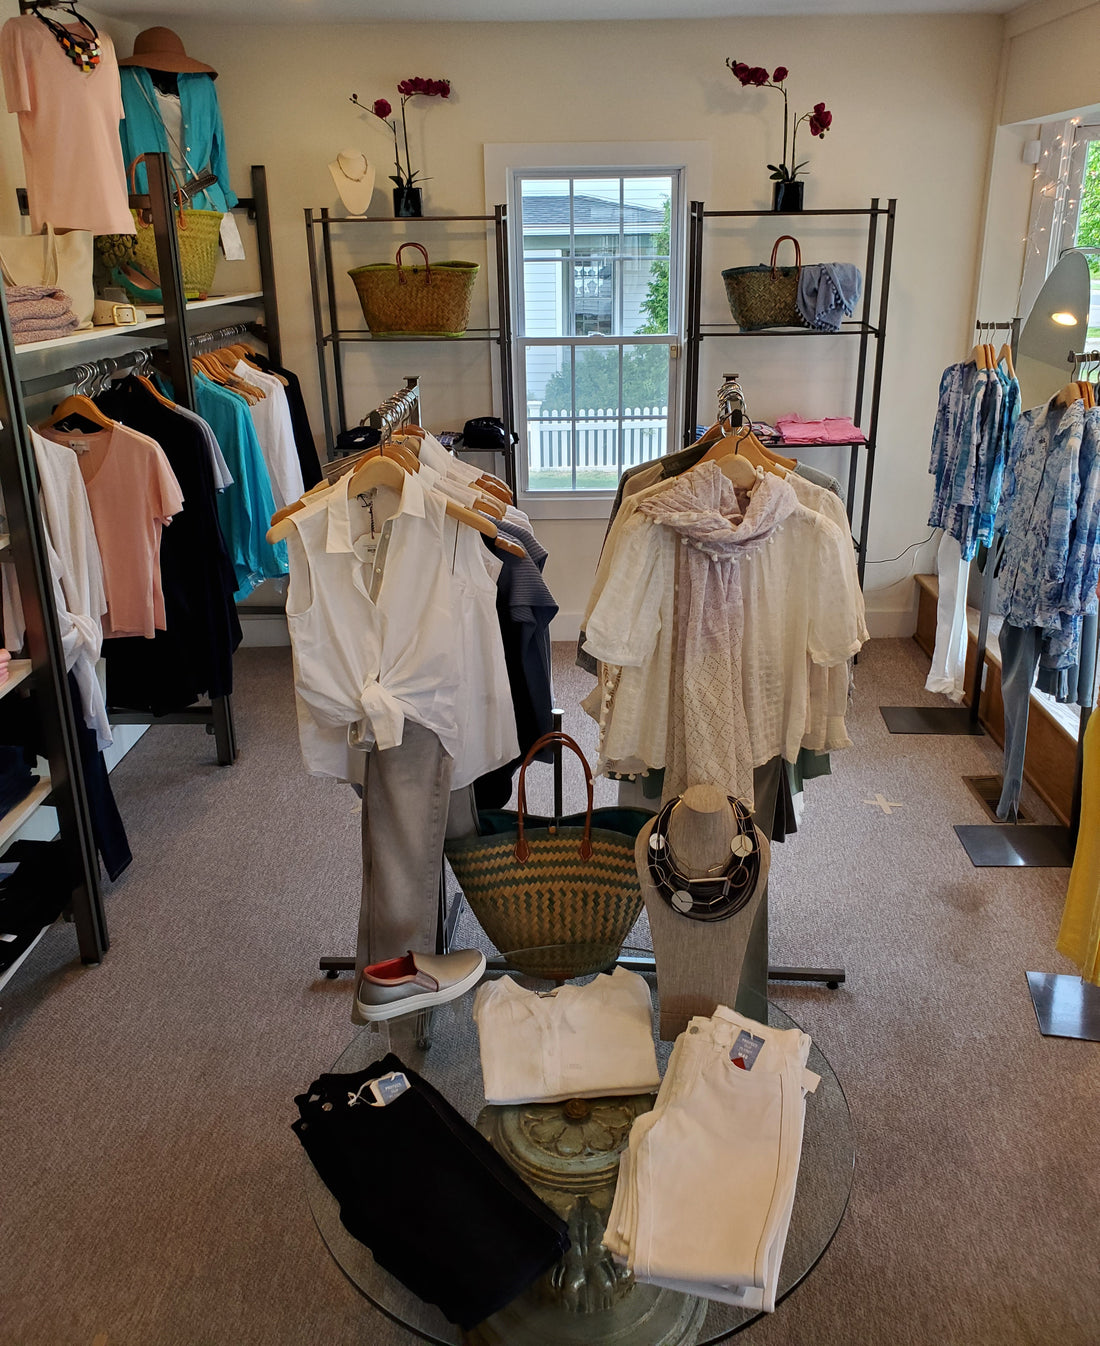 Everyday Contemporary Styling | Robertson Madison offers European & American Designer Clothing Shoes, Accessories & Jewelry | Shop Finely Shirts Johnny